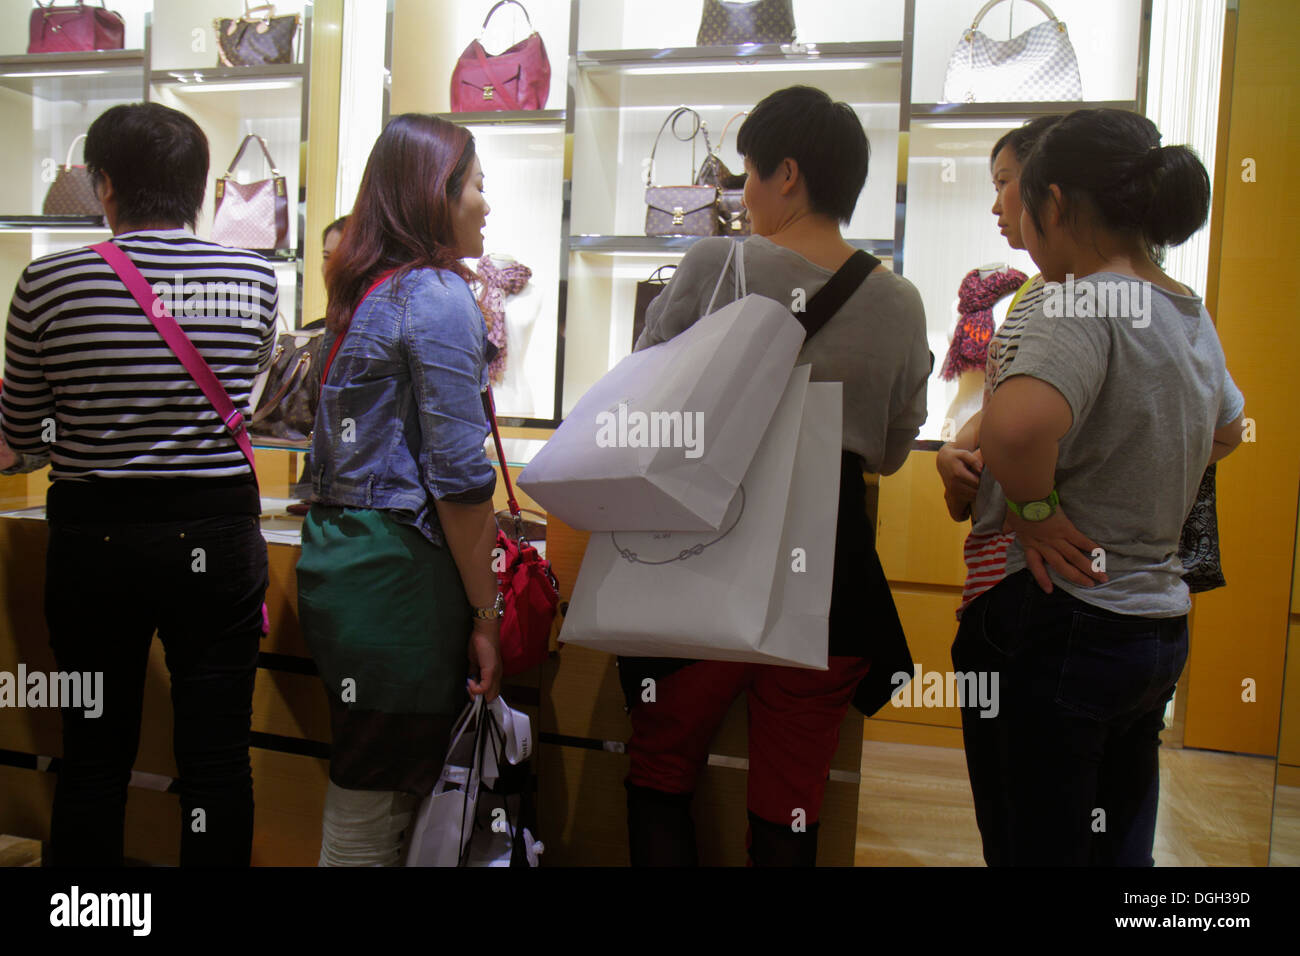 Paris France Europe French 9th arrondissement Boulevard Haussmann Galeries Lafayette department store shopping Asian woman desig - Stock Image